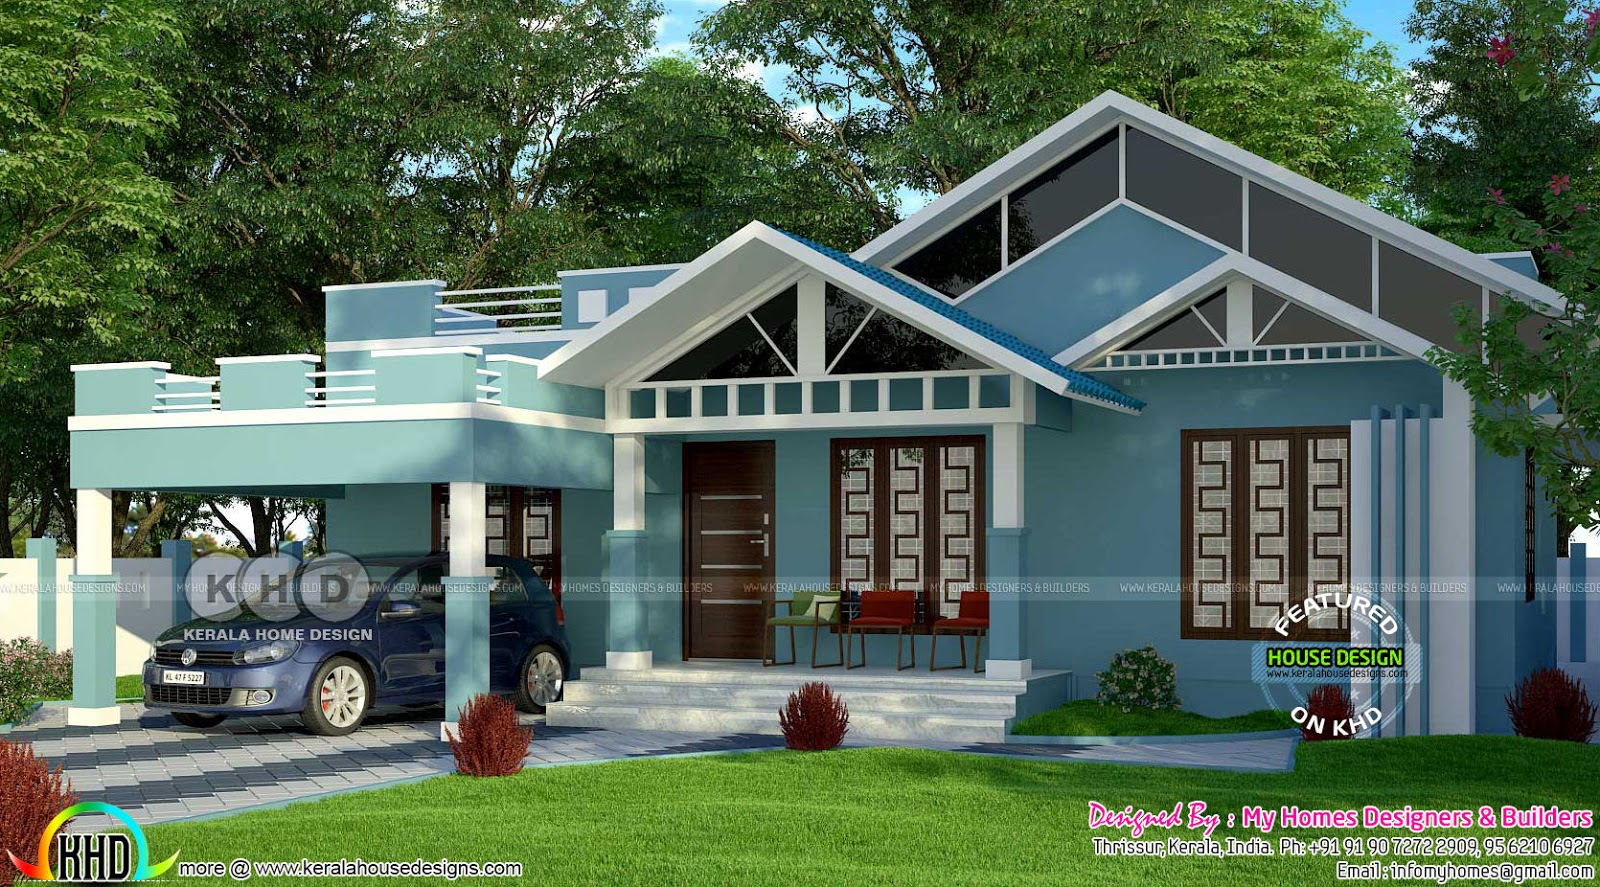 Total construction cost 22 lakh home kerala home design for What is the cost of building a house in india